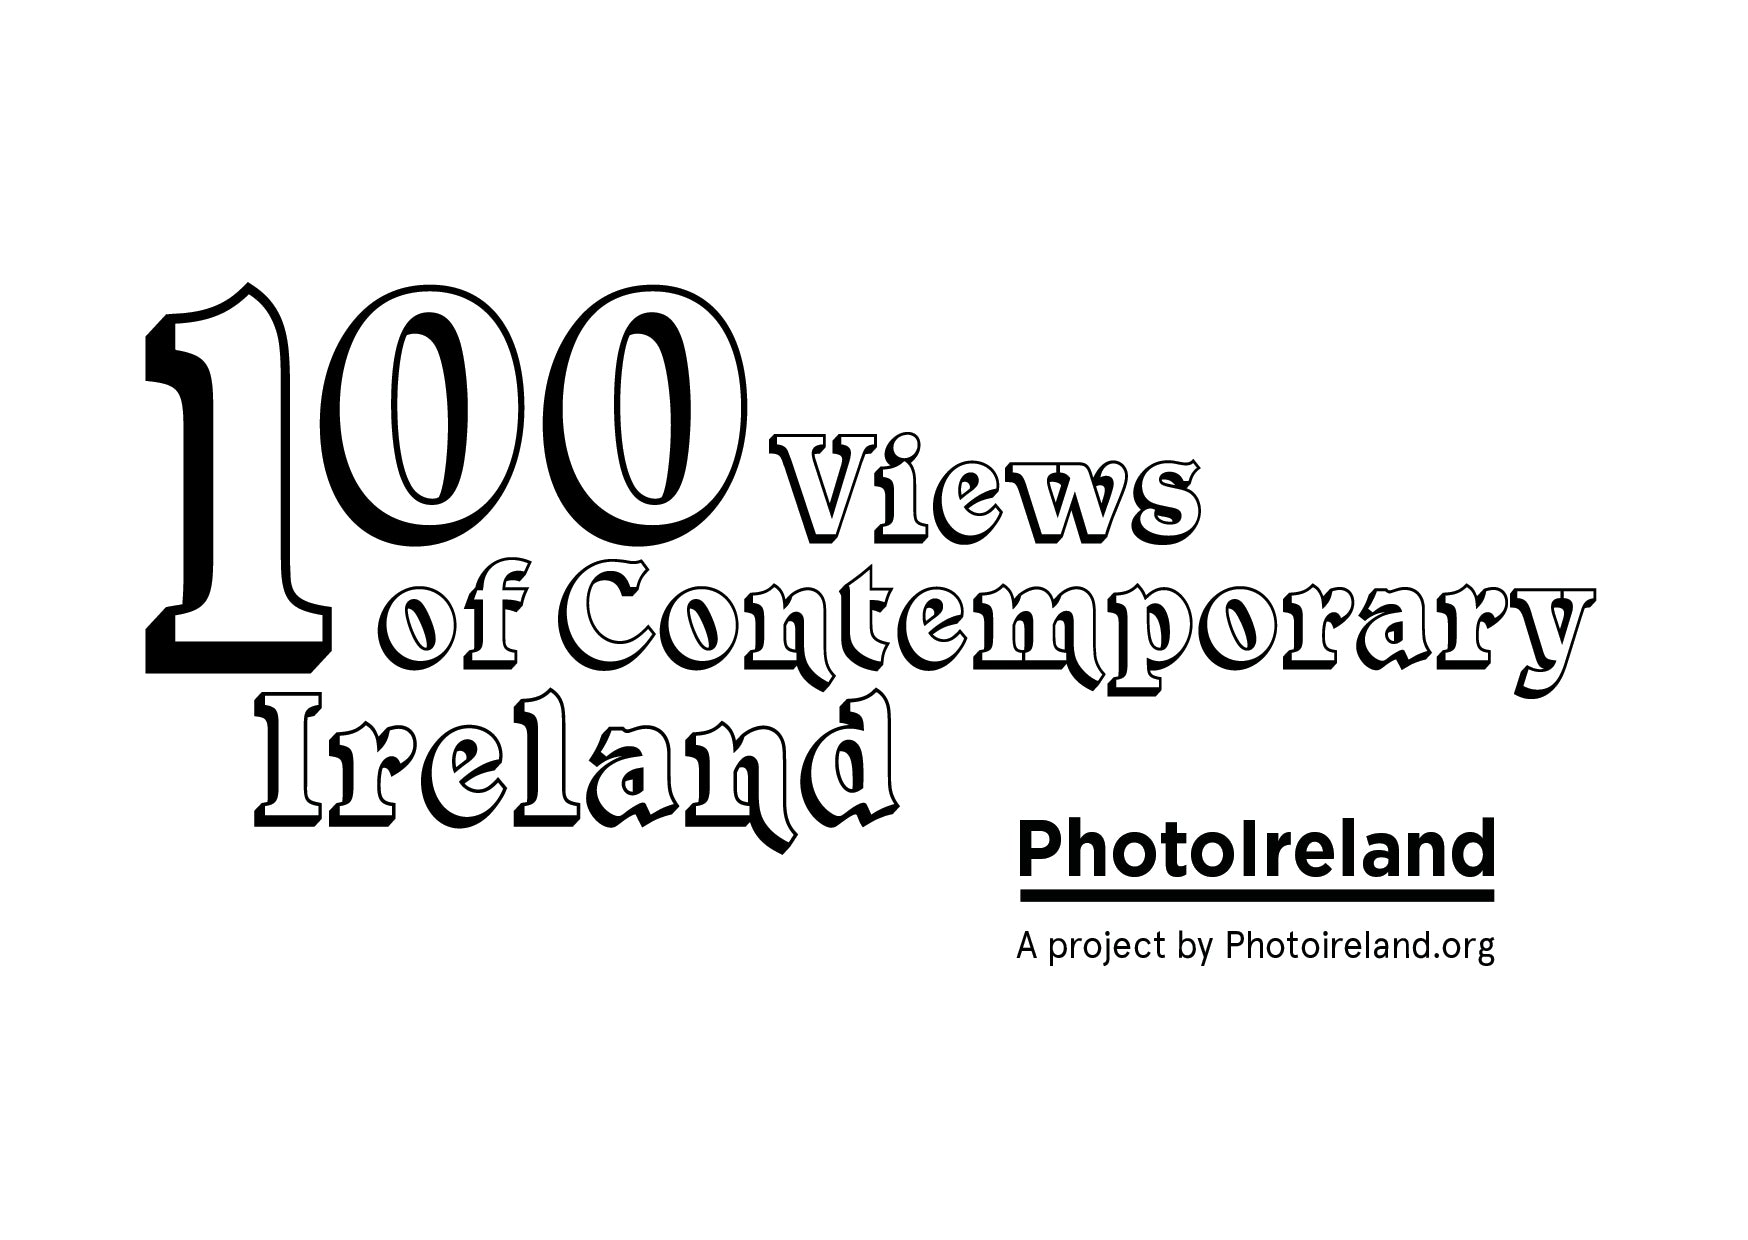 Jane Cummins, 100 Views of Contemporary Ireland